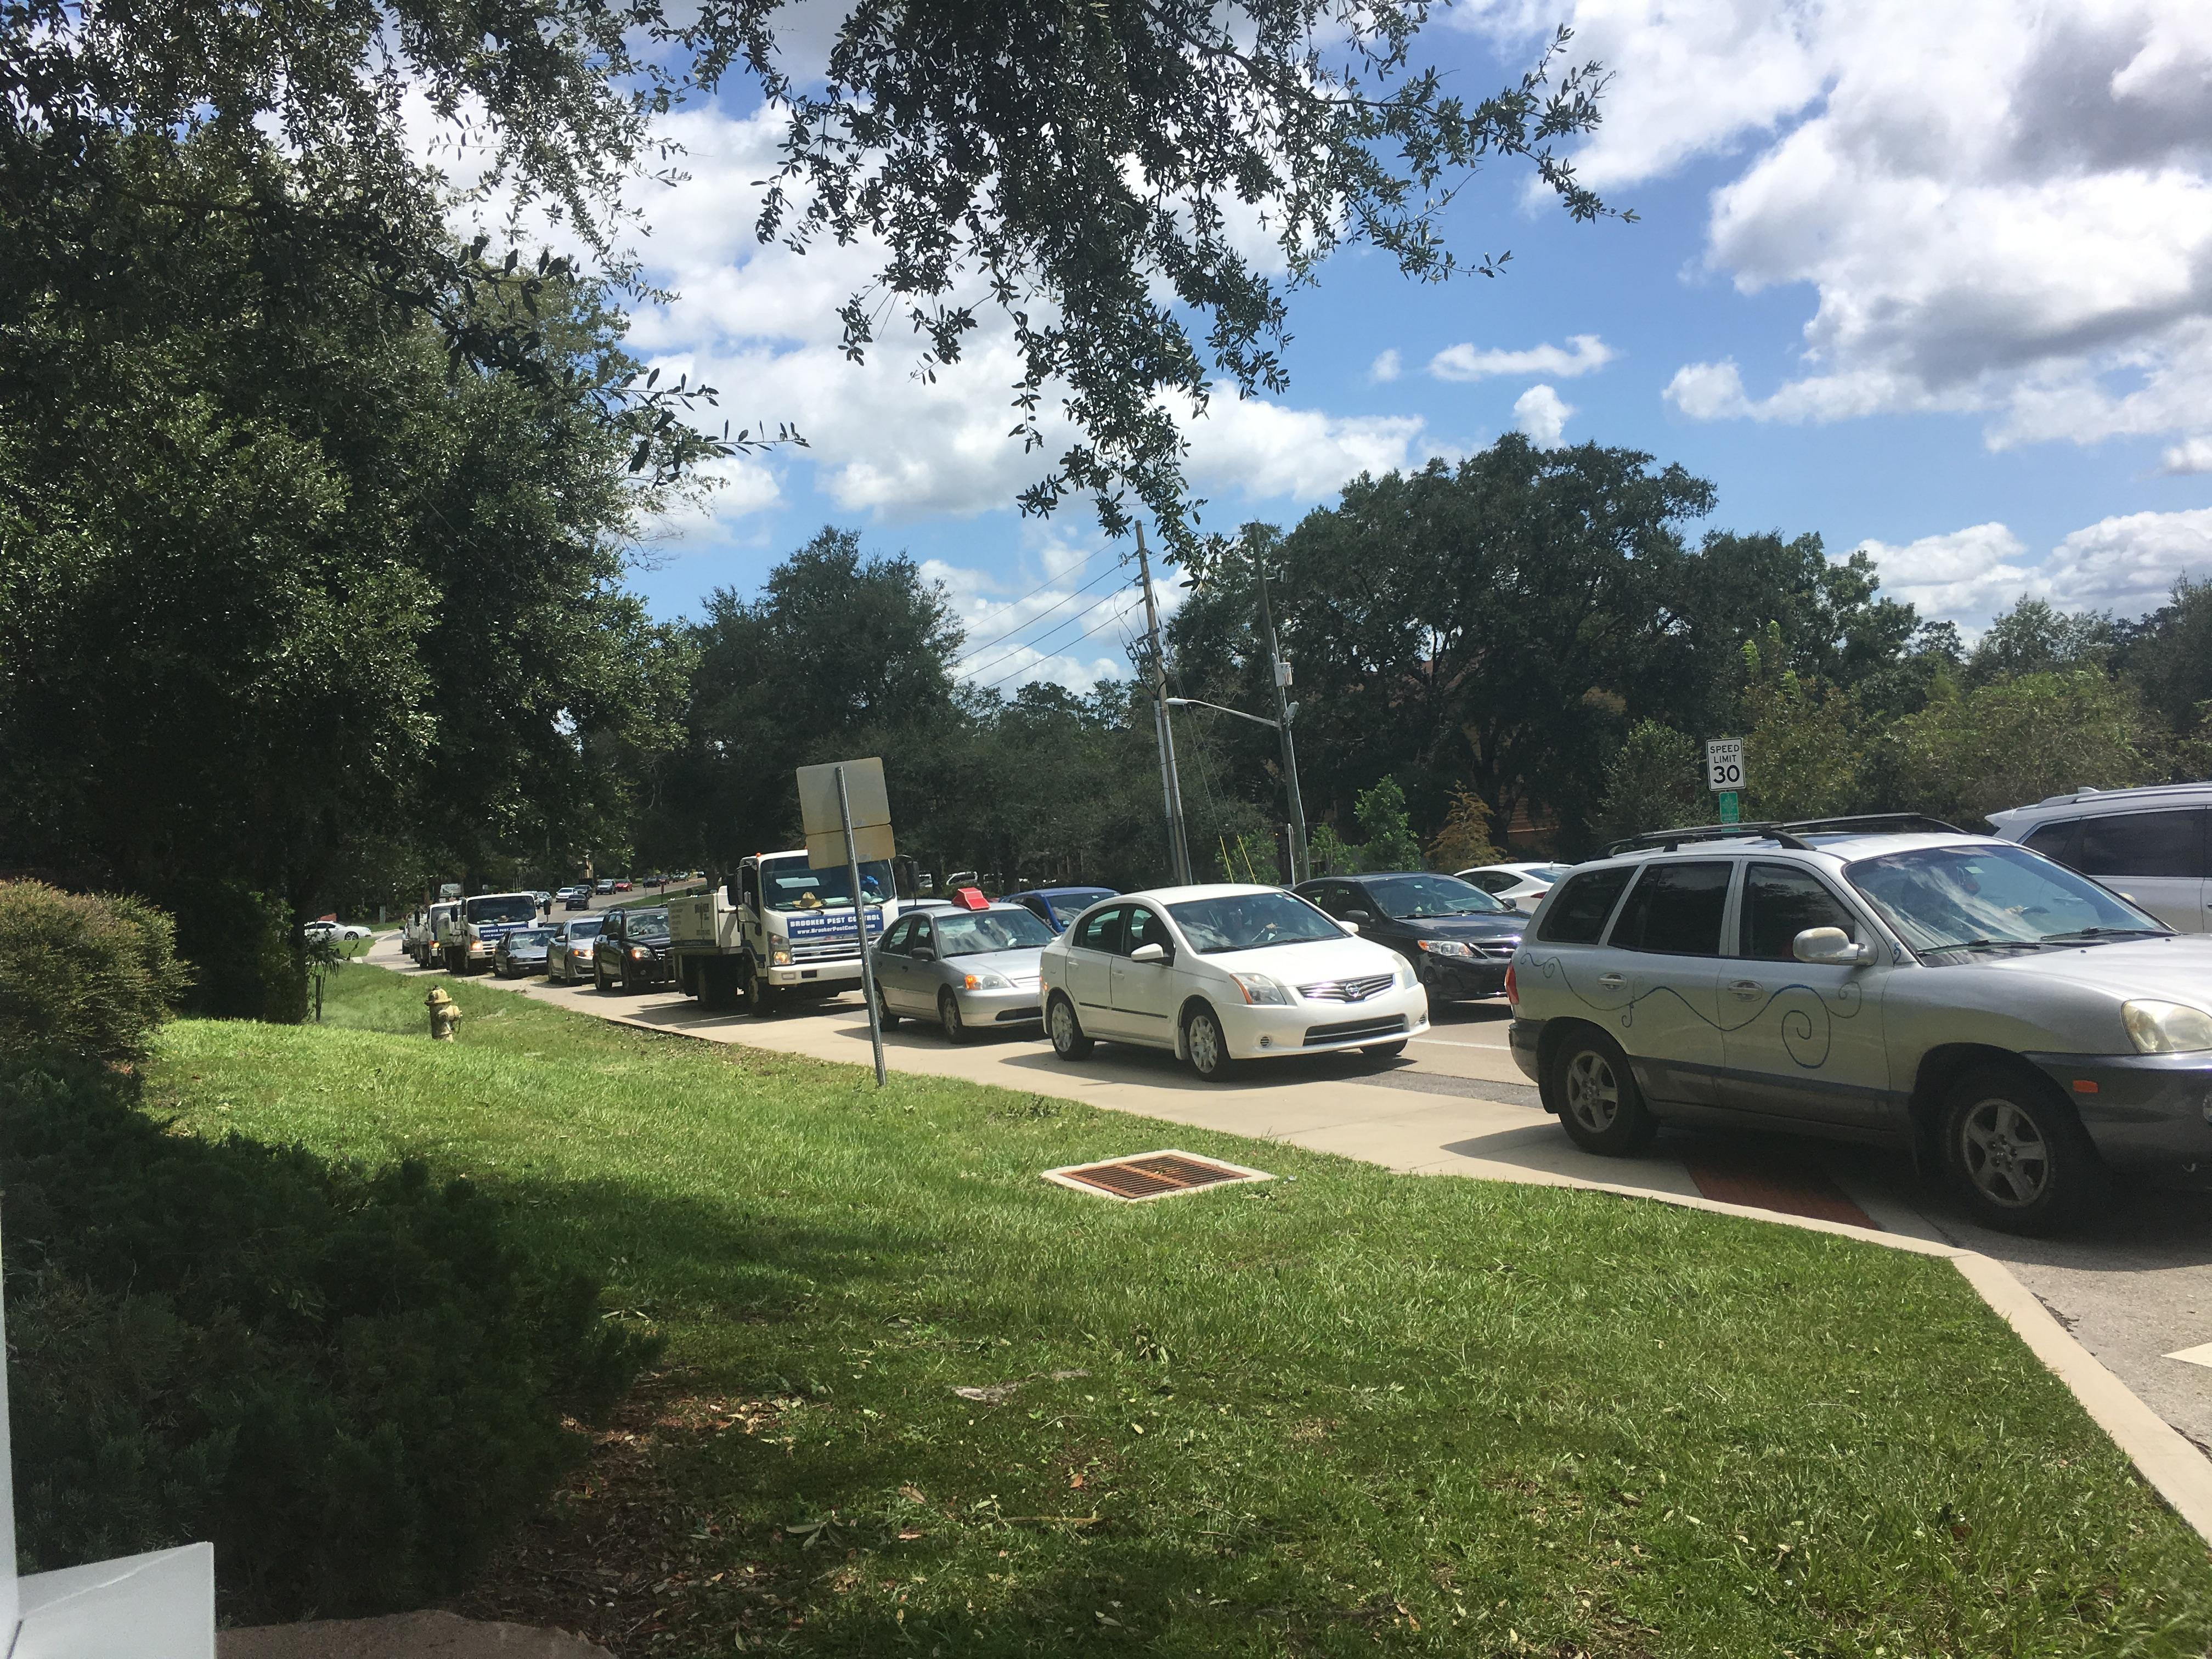 Cars line up for gas in Gainesville. Josslyn Howard/WGFL